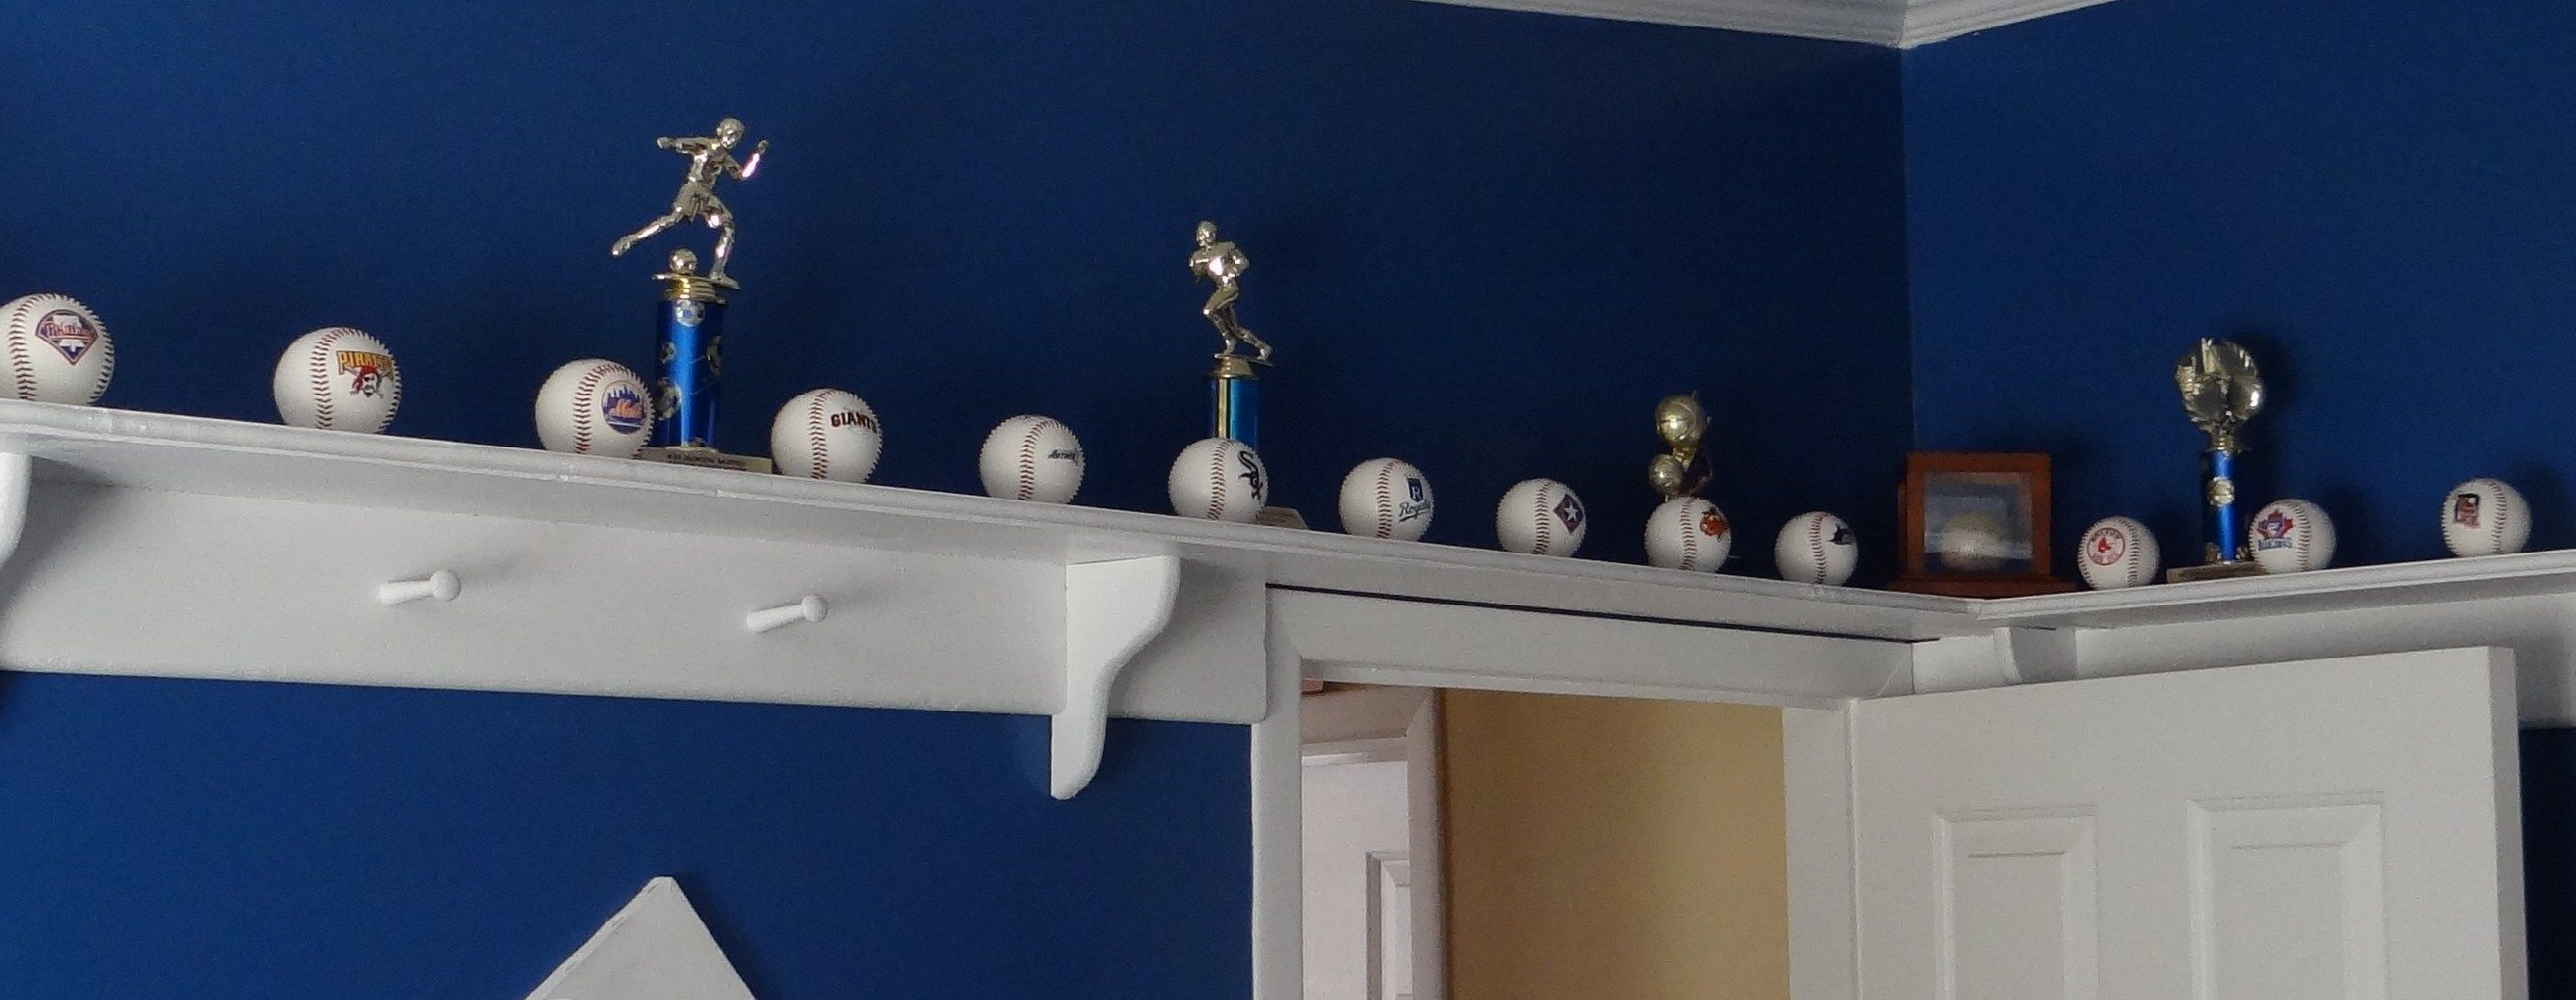 Husband Built A Shelf All The Way Around Our Sons Room To Hold His Baseball Collection